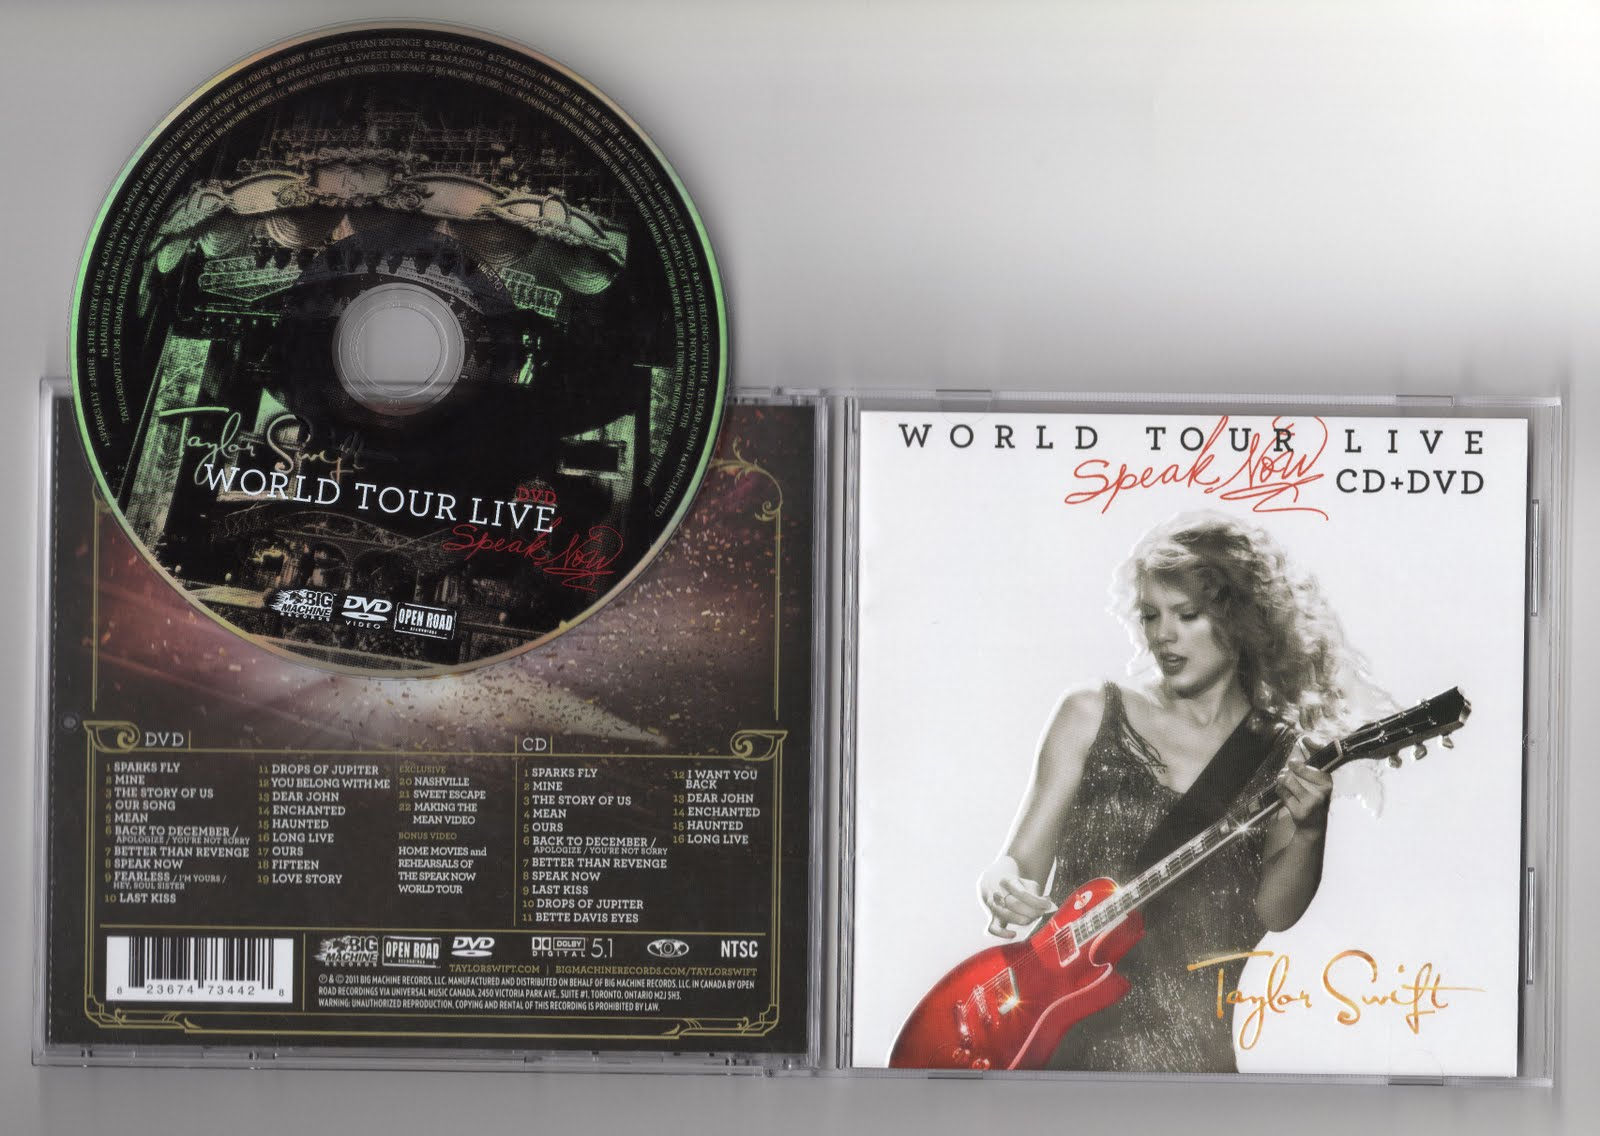 http://2.bp.blogspot.com/-J5_Ffqcx0Hk/TtSMVJLvxTI/AAAAAAAAHFw/6wU3-AVjuRE/s1600/000-taylor_swift-speak_now_world_tour_live-%252528deluxe_edition_bonus_dvd%252529-2011-scan.jpg